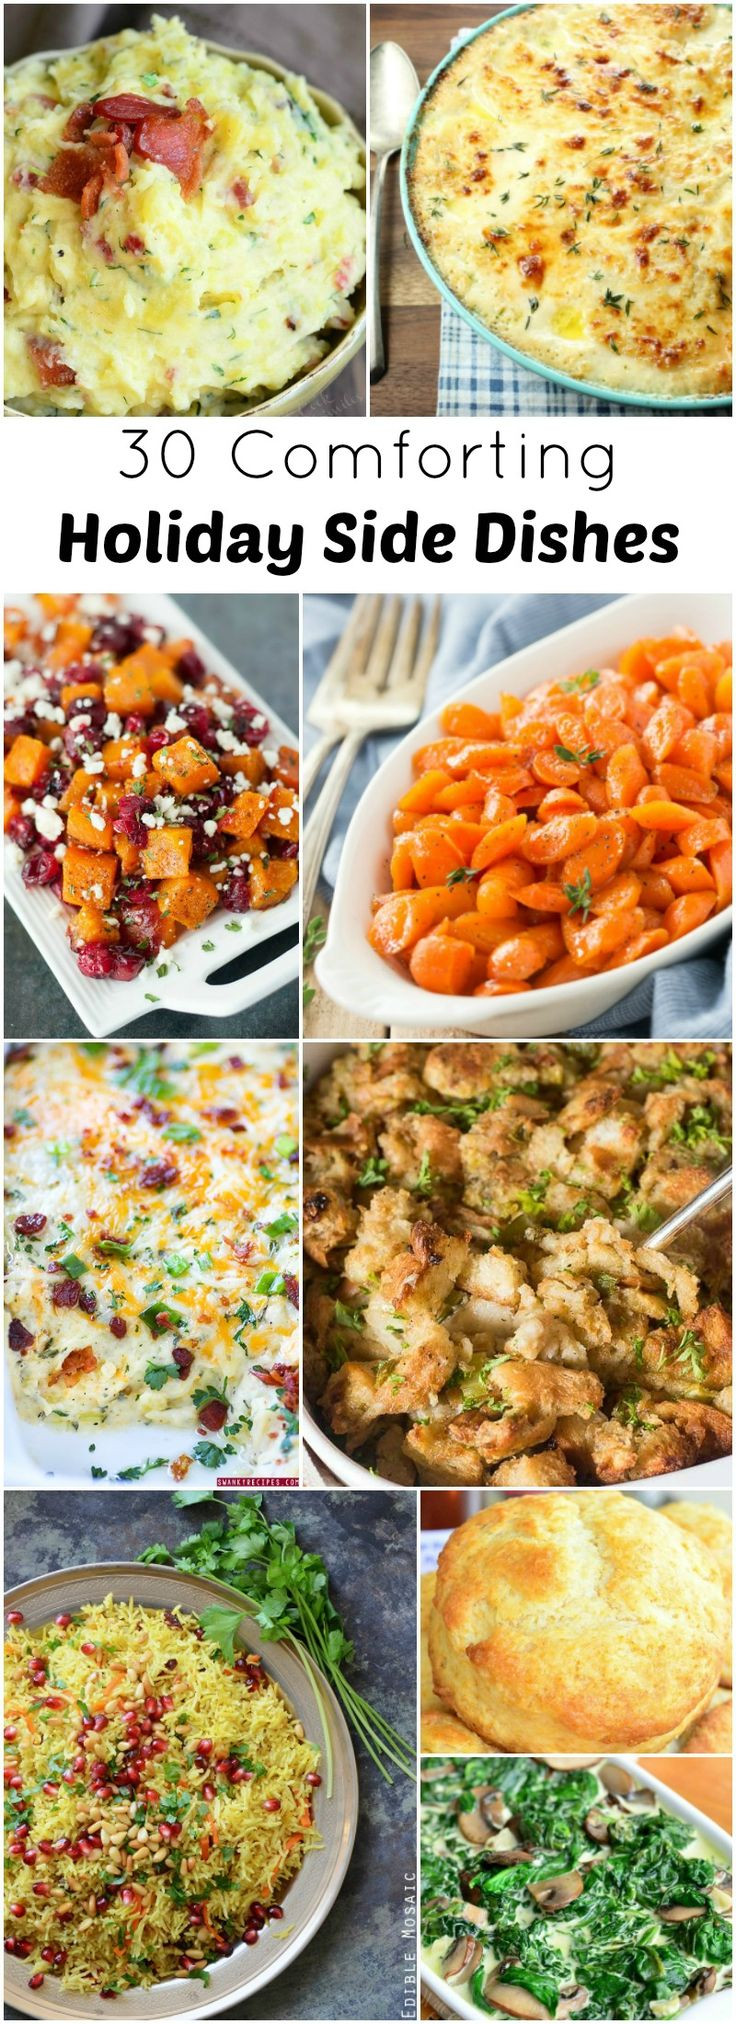 Side Dishes For Christmas Buffet  Best 20 Holiday Side Dishes ideas on Pinterest